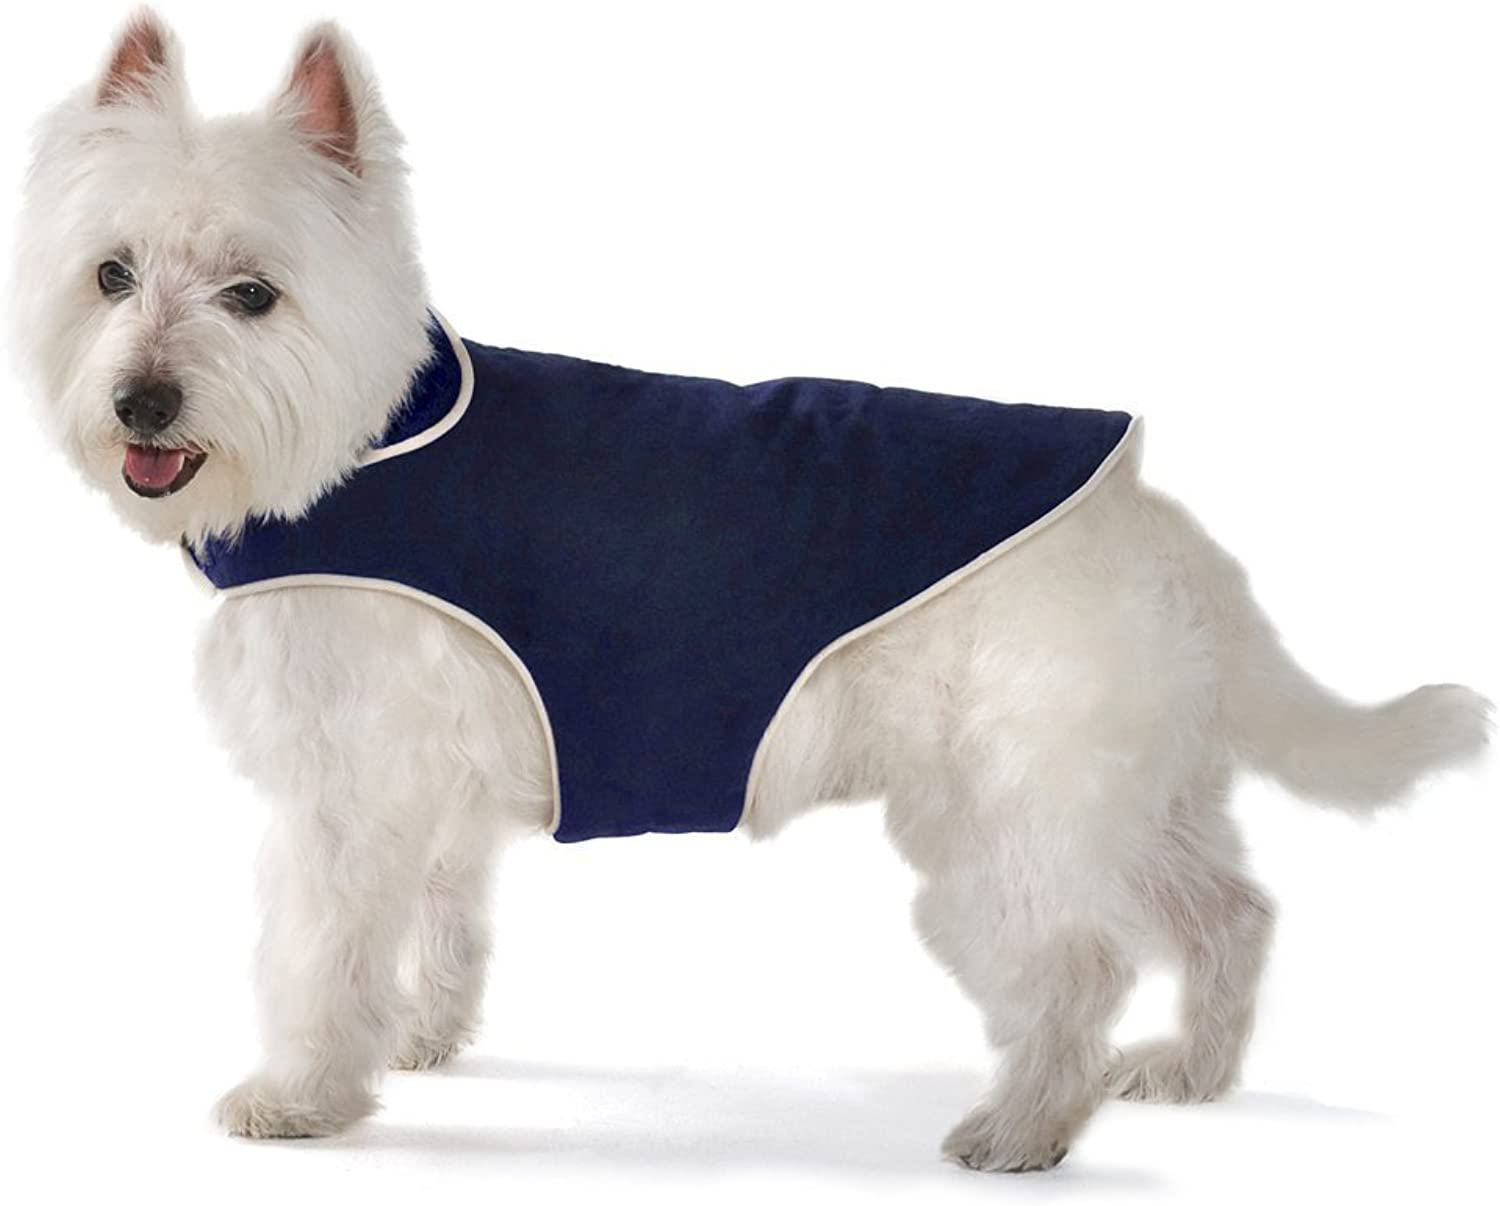 Dog Gone Smart Jacket with Ecru Piping for Dogs, 12Inch, Navy